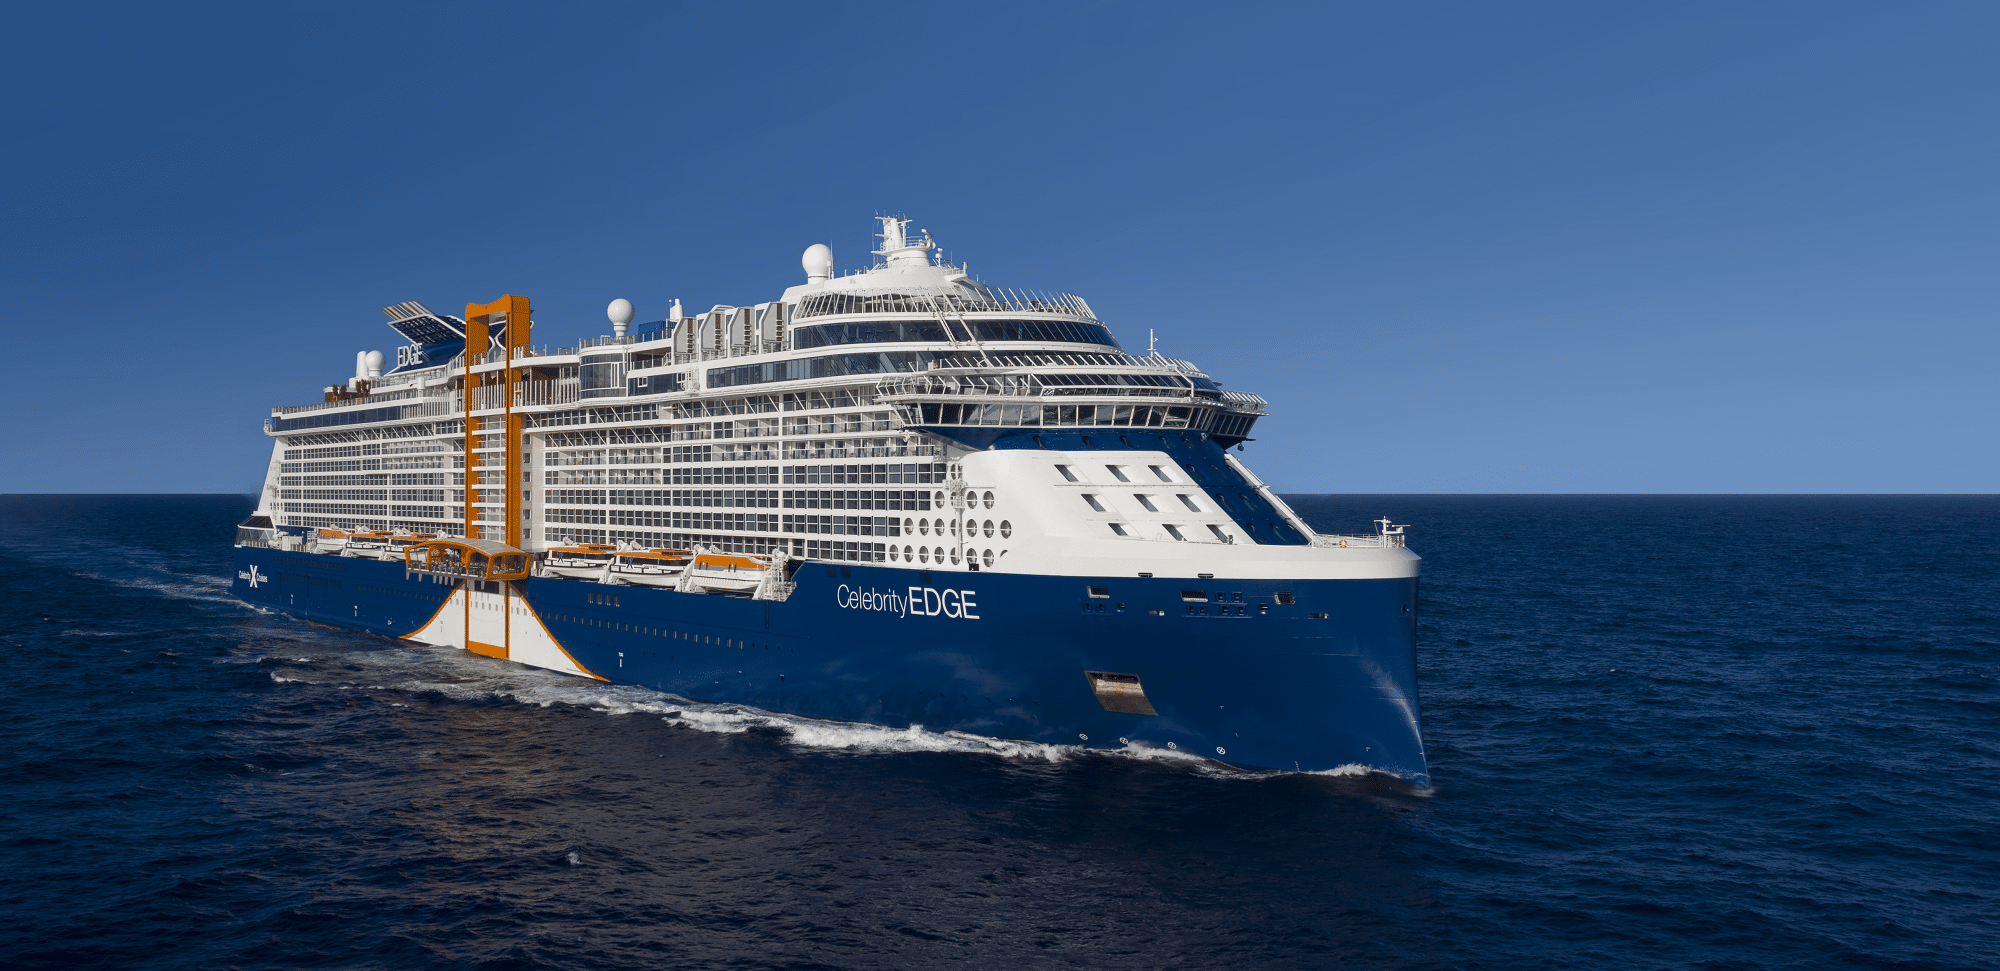 Cruiseschip-Celebrity Edge-Celebrity Cruises-Schip